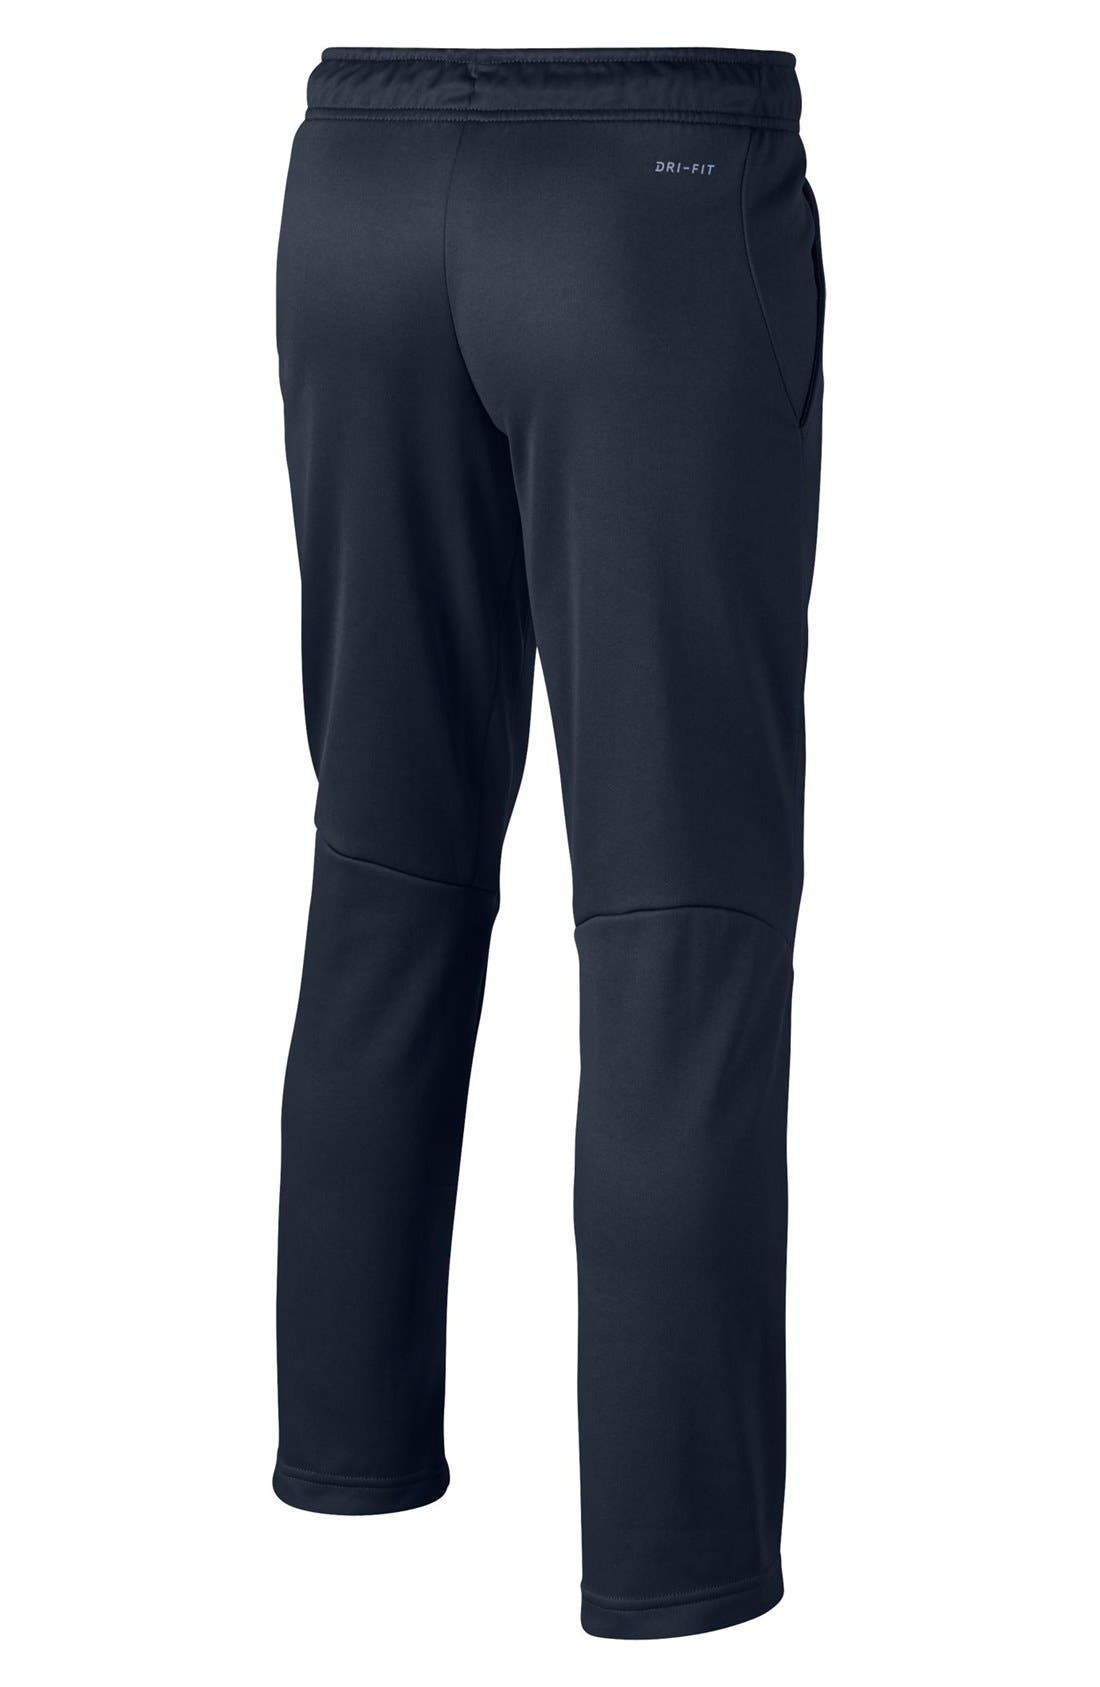 Therma-FIT Training Pants,                             Alternate thumbnail 14, color,